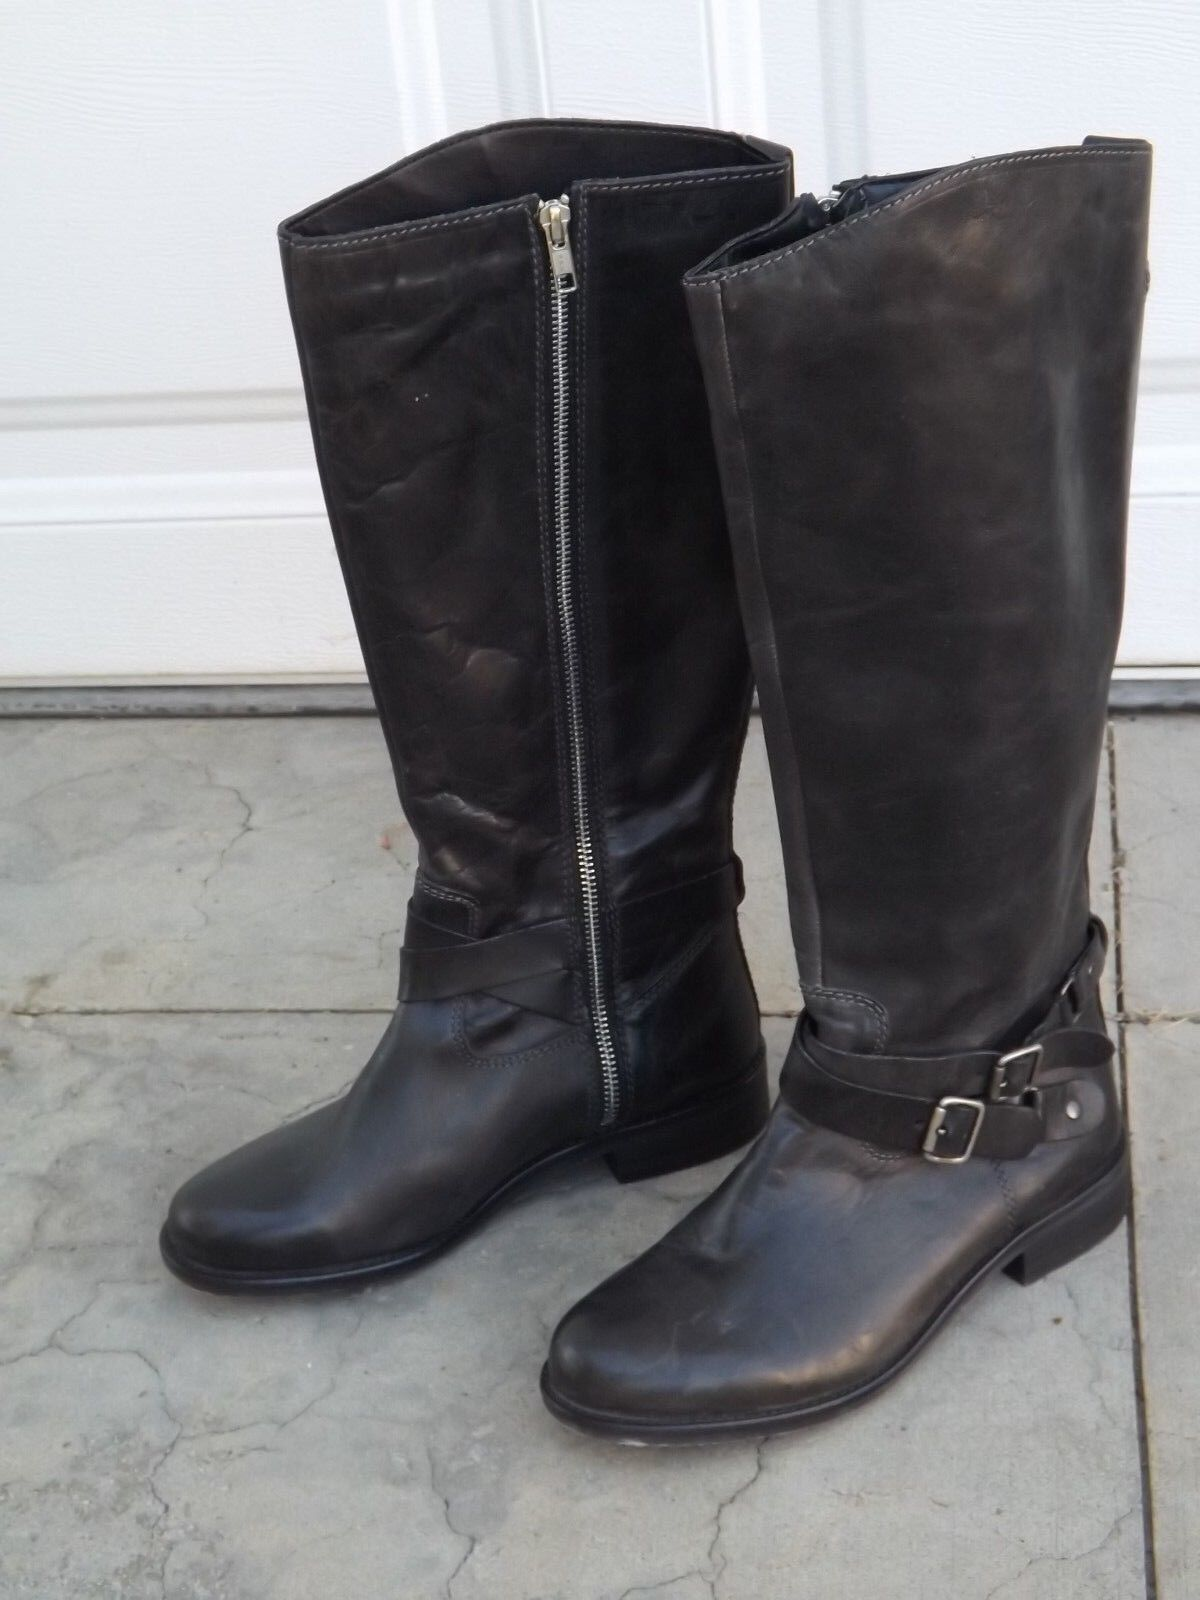 WOMENS NORDSTROM  KNEE HIGH BLACK LEATHER BUCKLE ZIPPER BOOTS SZ 7.5